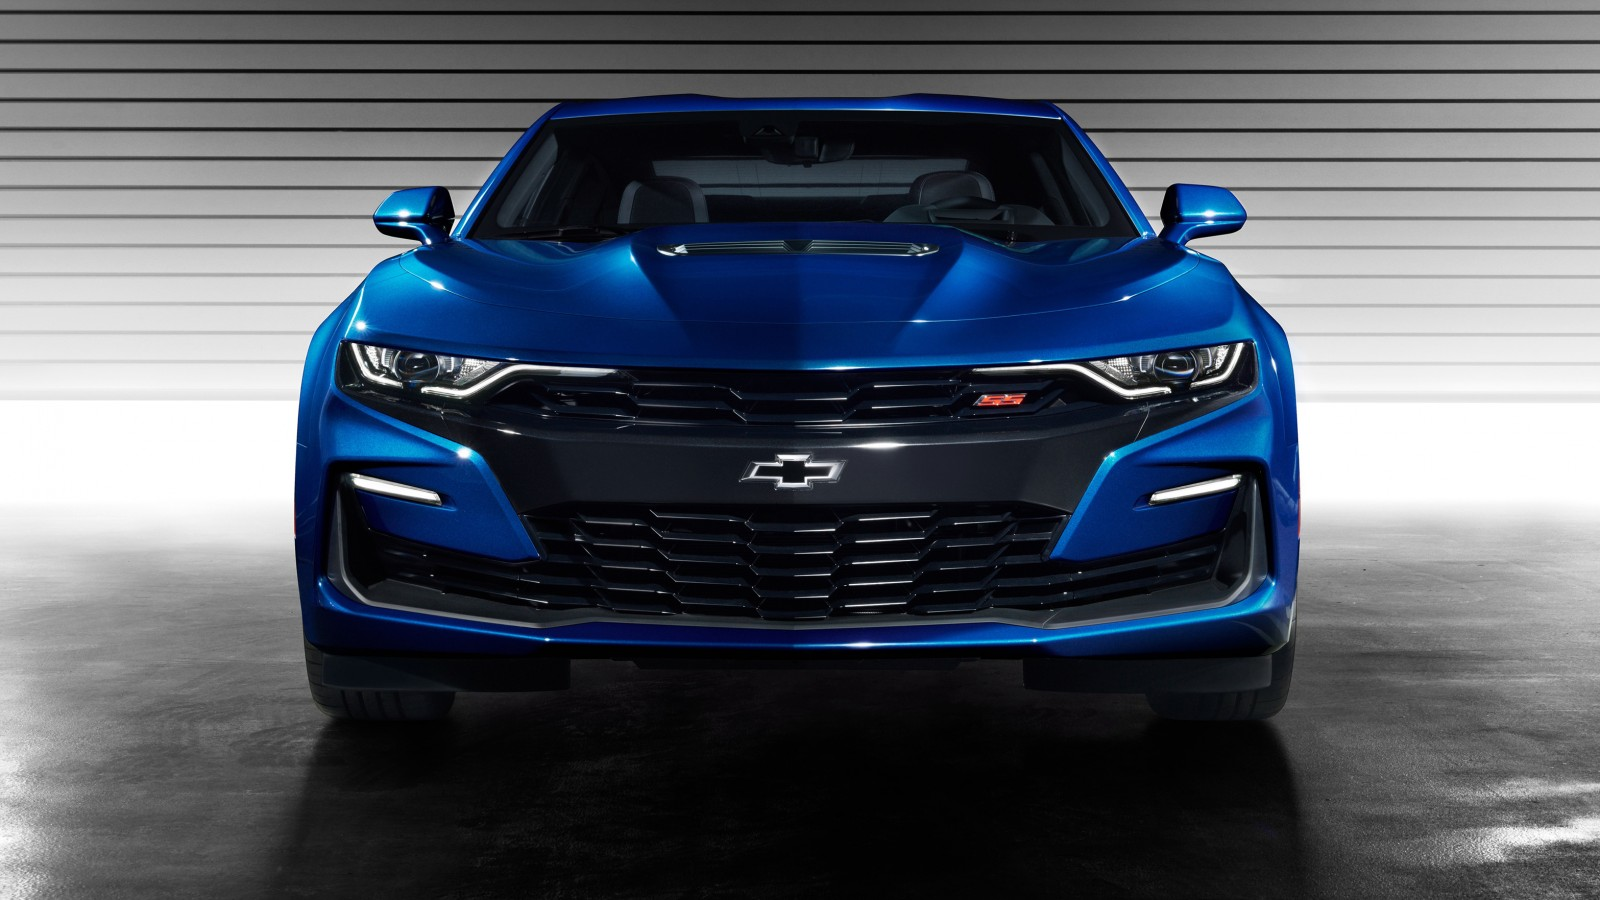 2019 Chevrolet Camaro Ss Wallpaper Hd Car Wallpapers